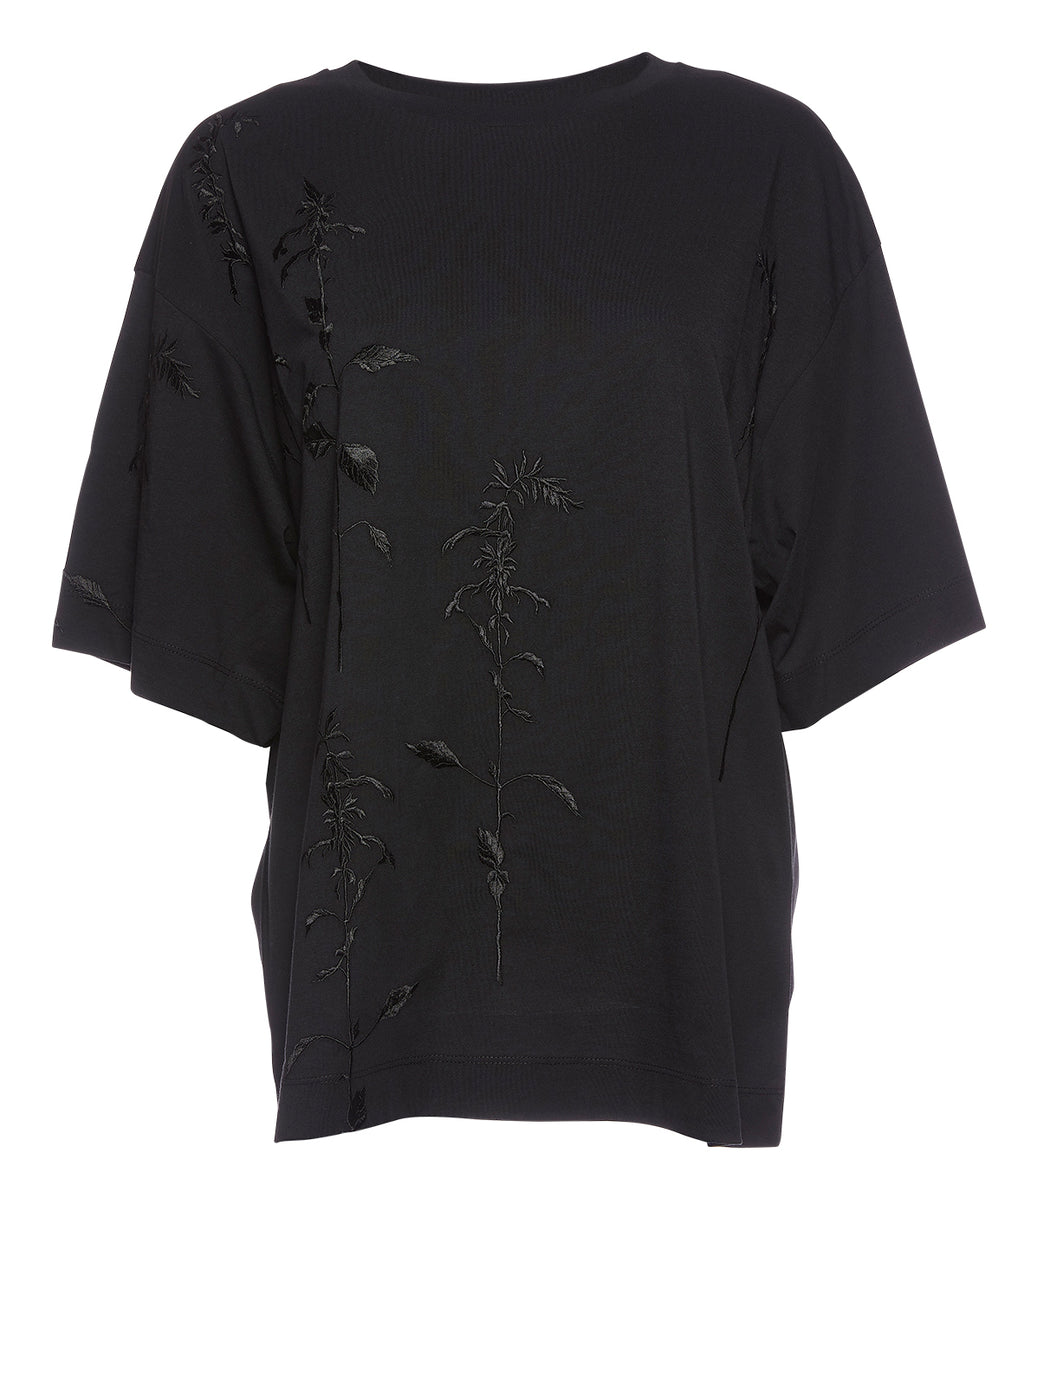 Hegel Embroidered T-Shirt